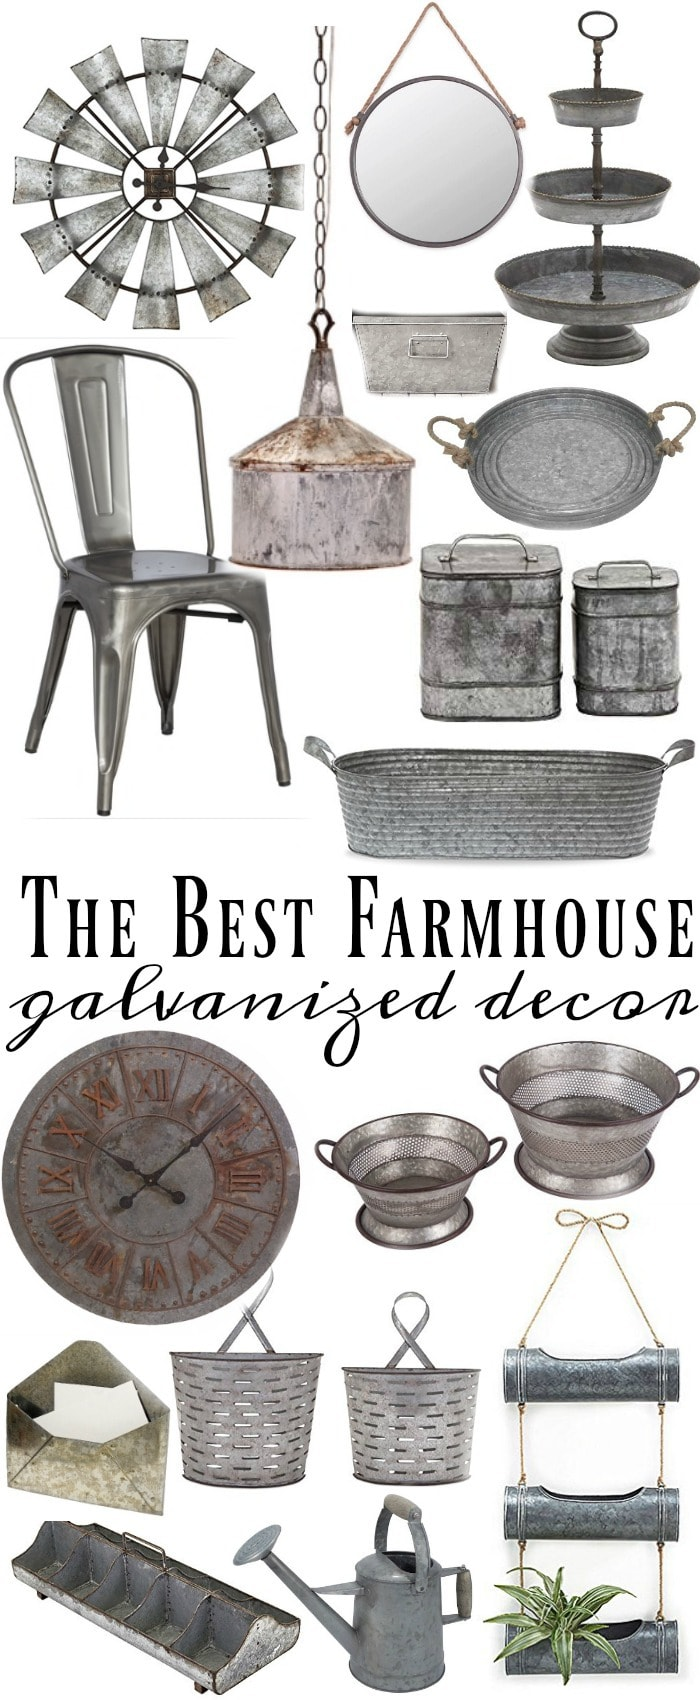 where to find the best galvanized home decor - liz marie blog